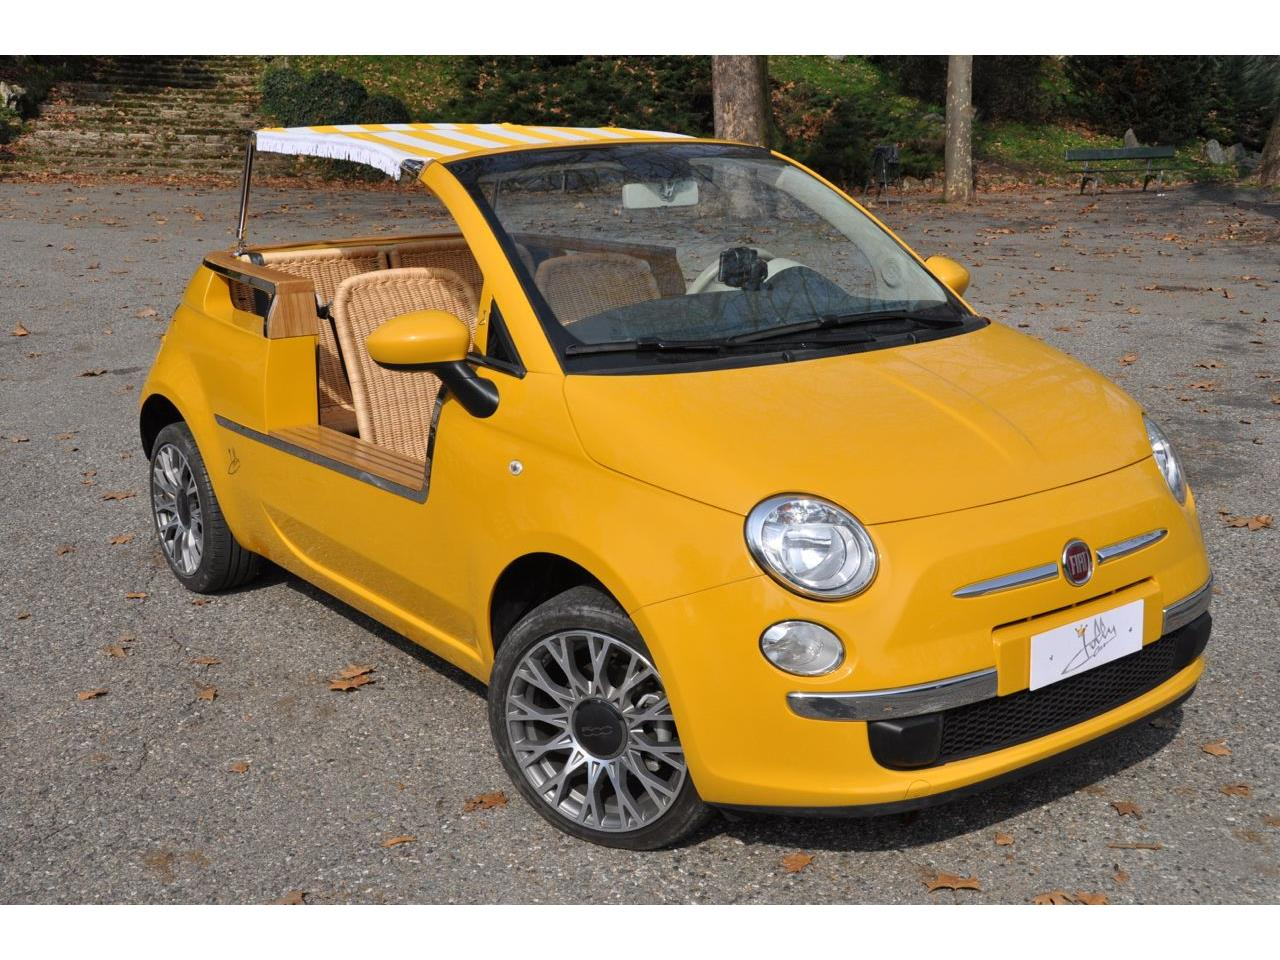 2015 Fiat 500 for sale in NEW YORK, NY – photo 5